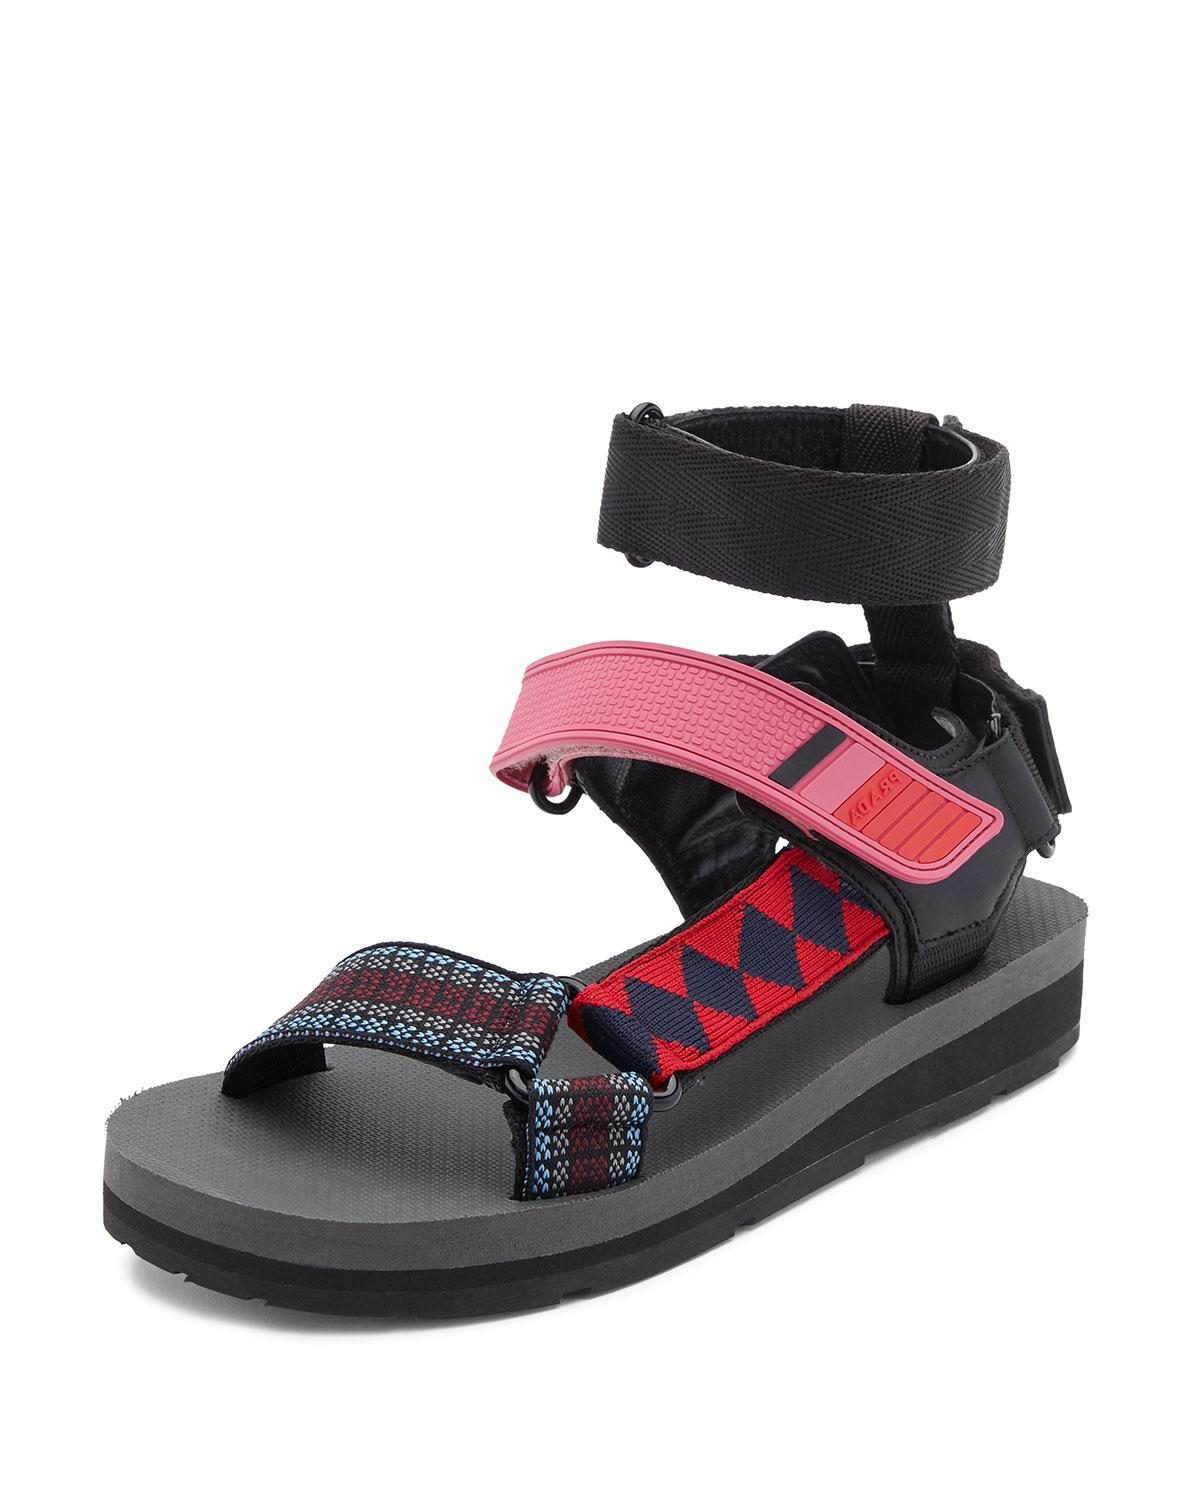 Prada Printed Grip Strap Sandal In Blue Lyst